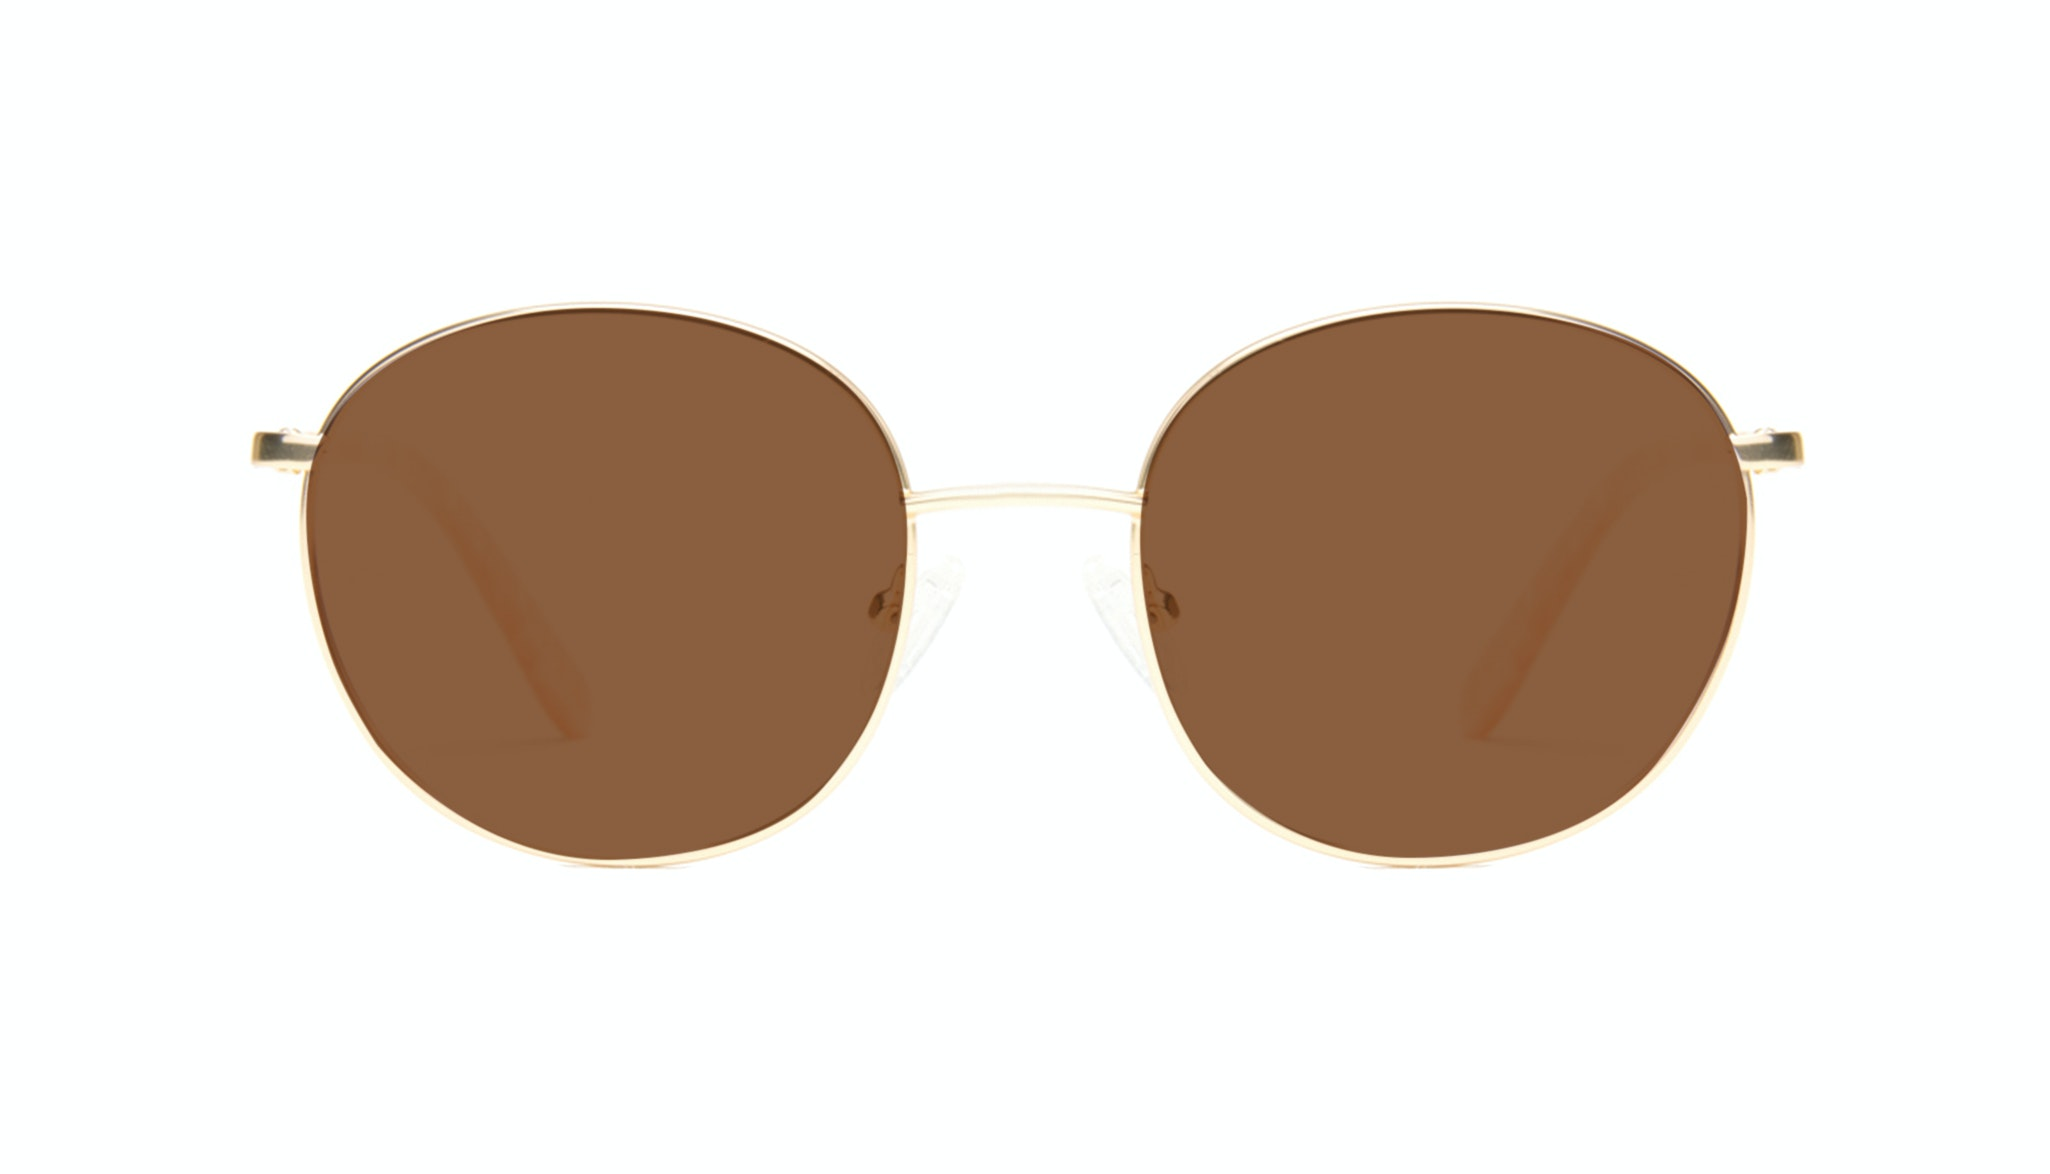 Affordable Fashion Glasses Round Sunglasses Women Joy Gold Marble Front